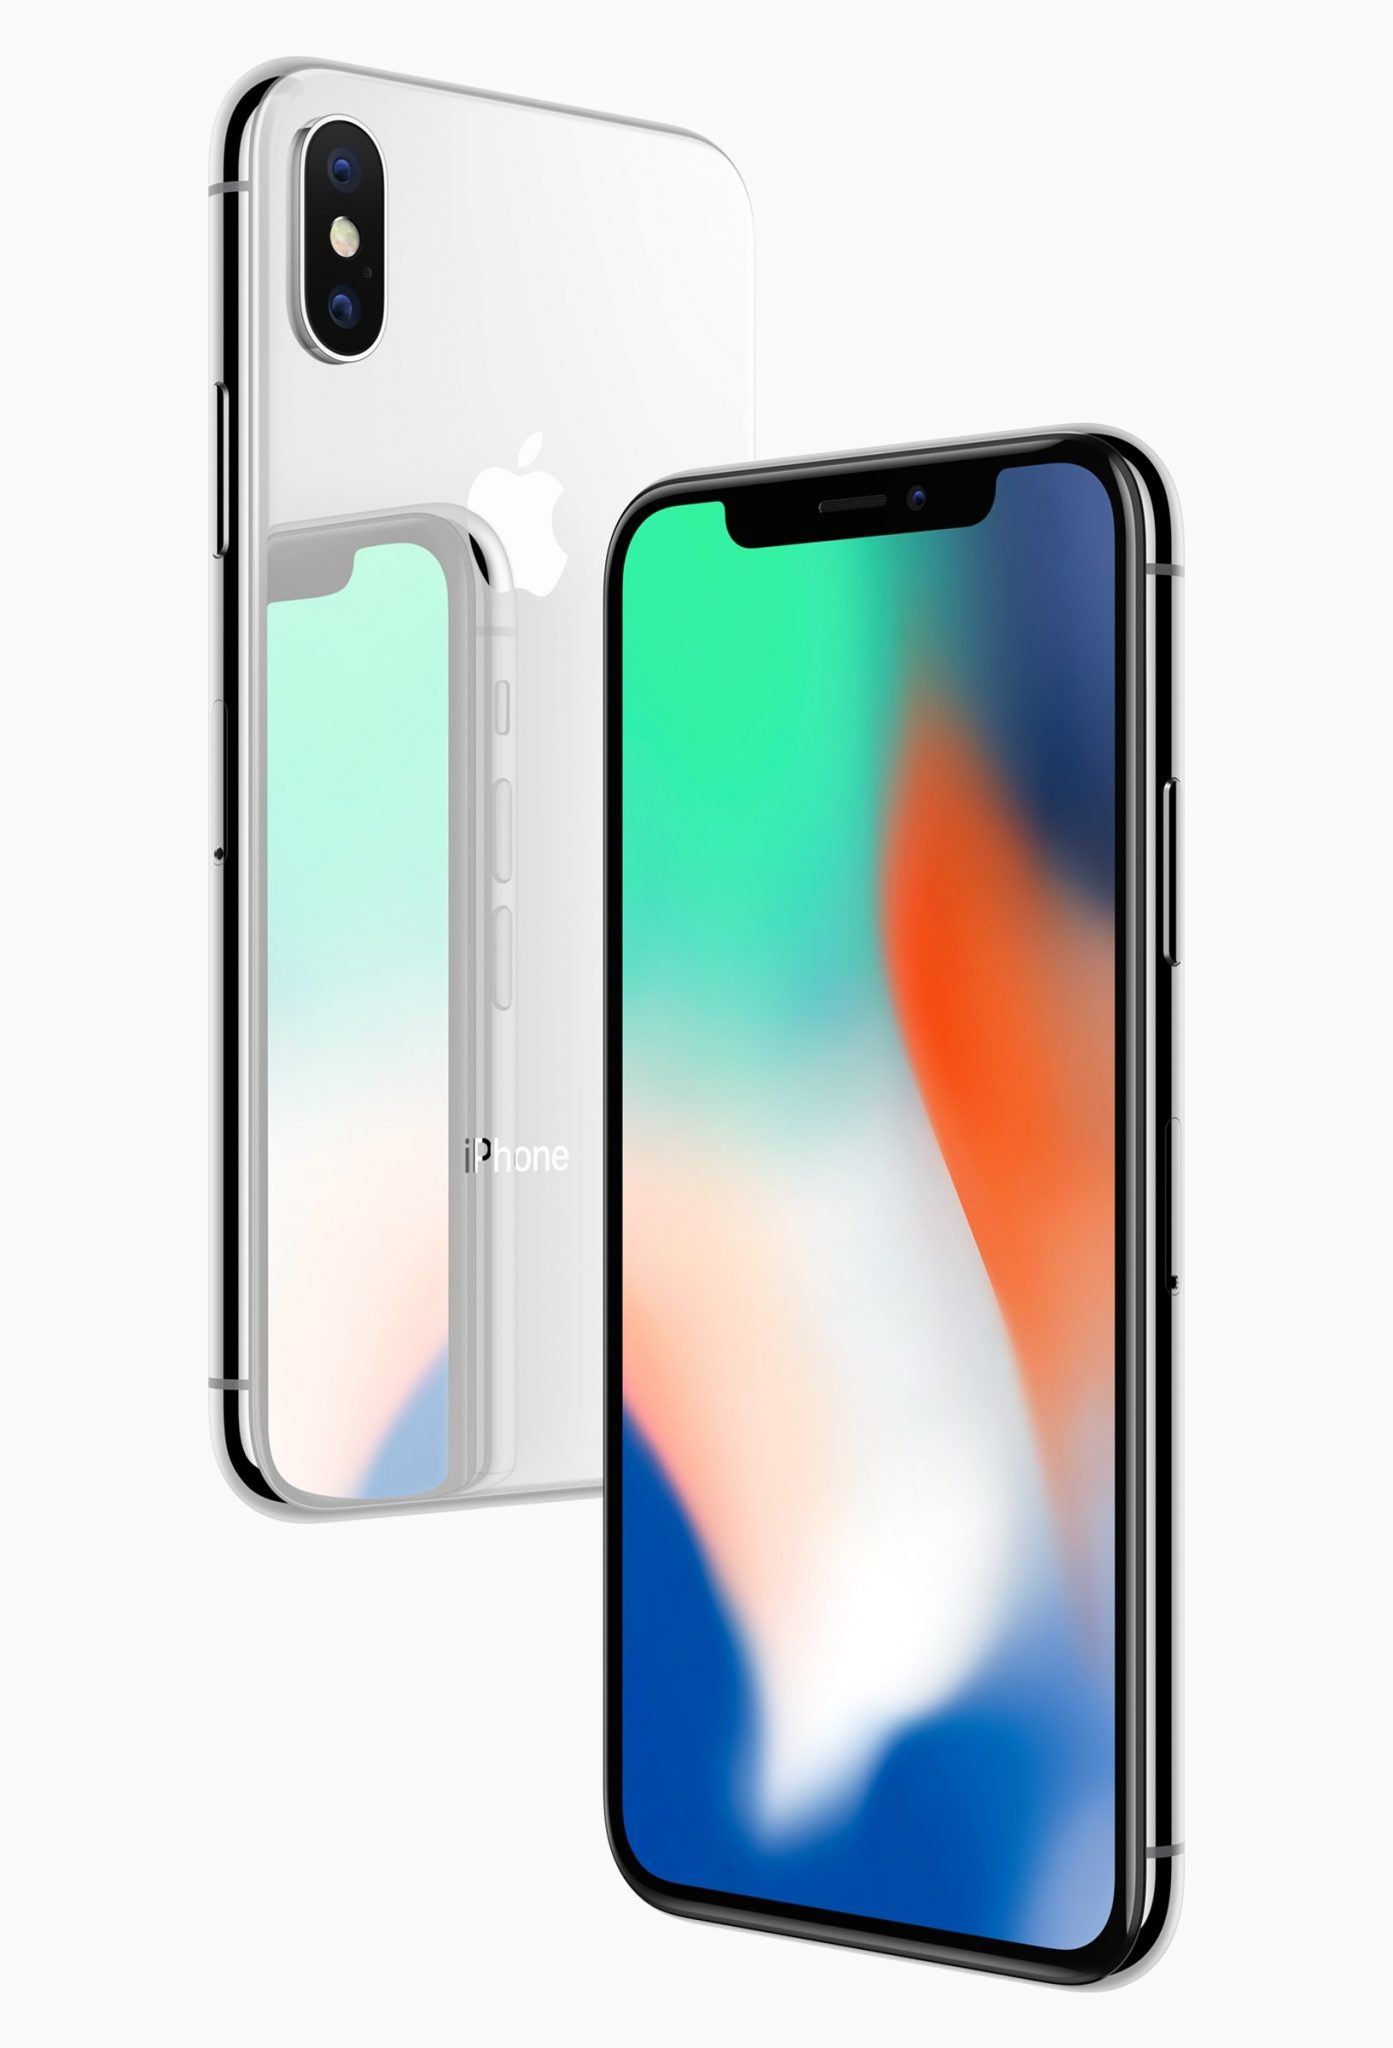 iPhone X Give-Away (3 of them); Test me, No Lie (I Will Share Results Publicly)